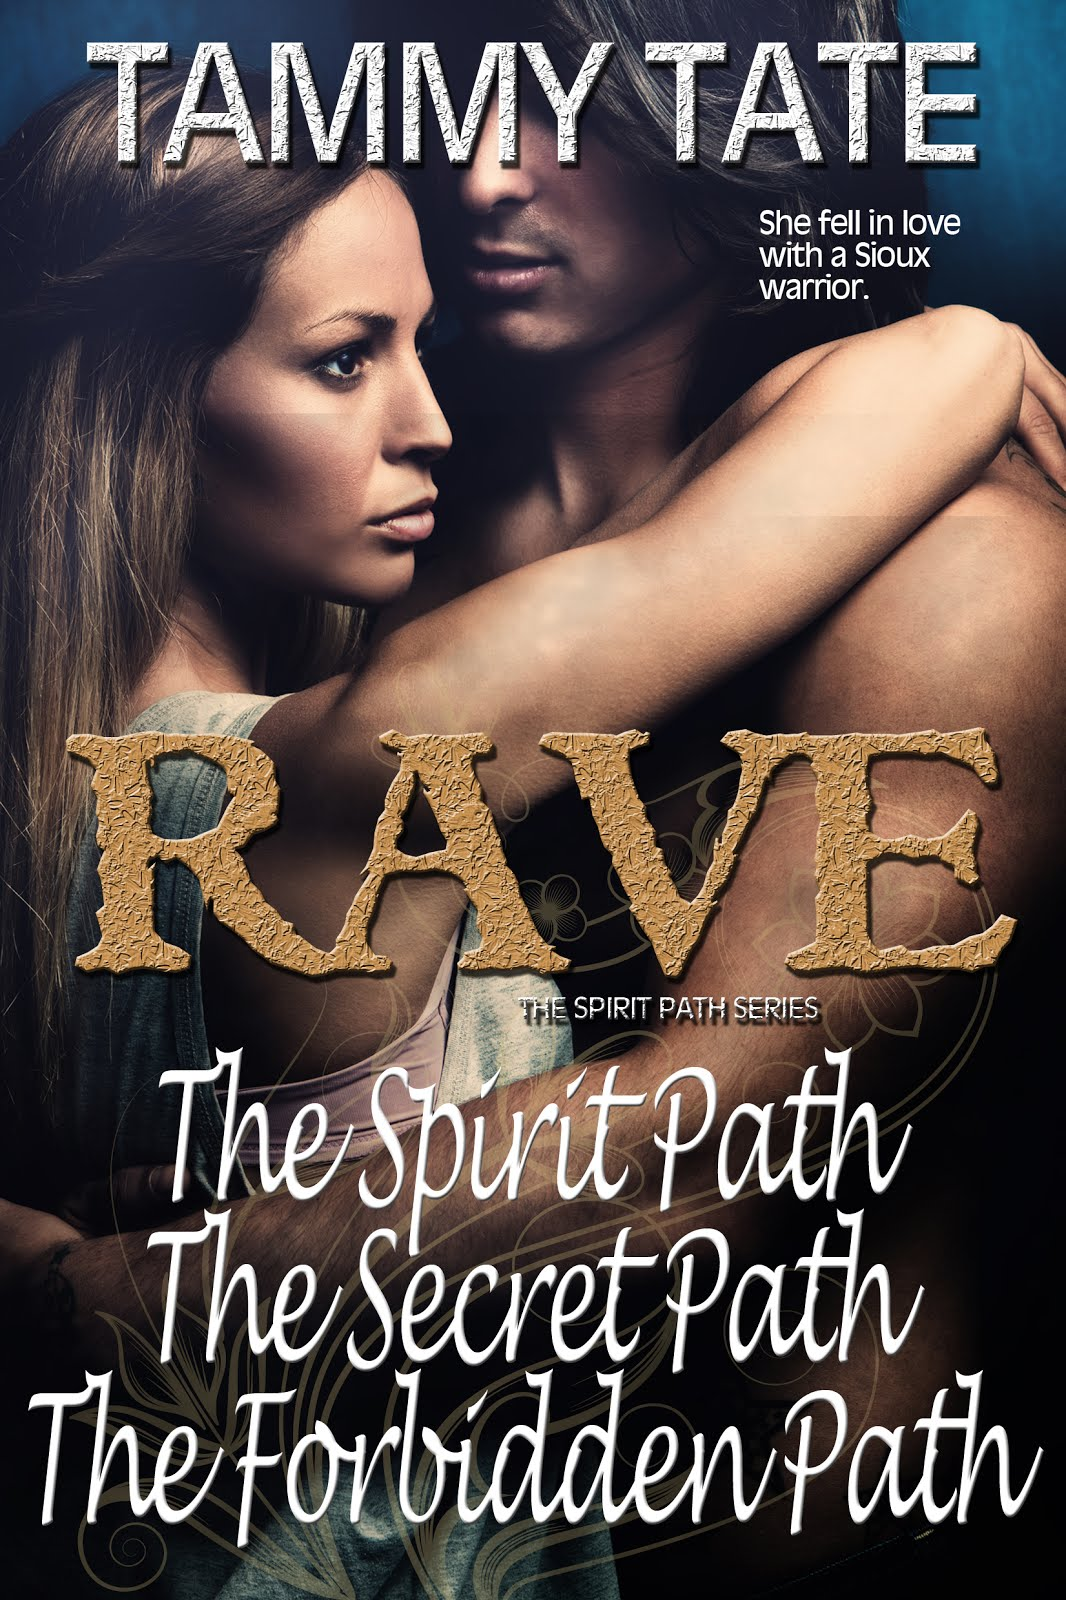 RAVE (The complete Spirit Path series)